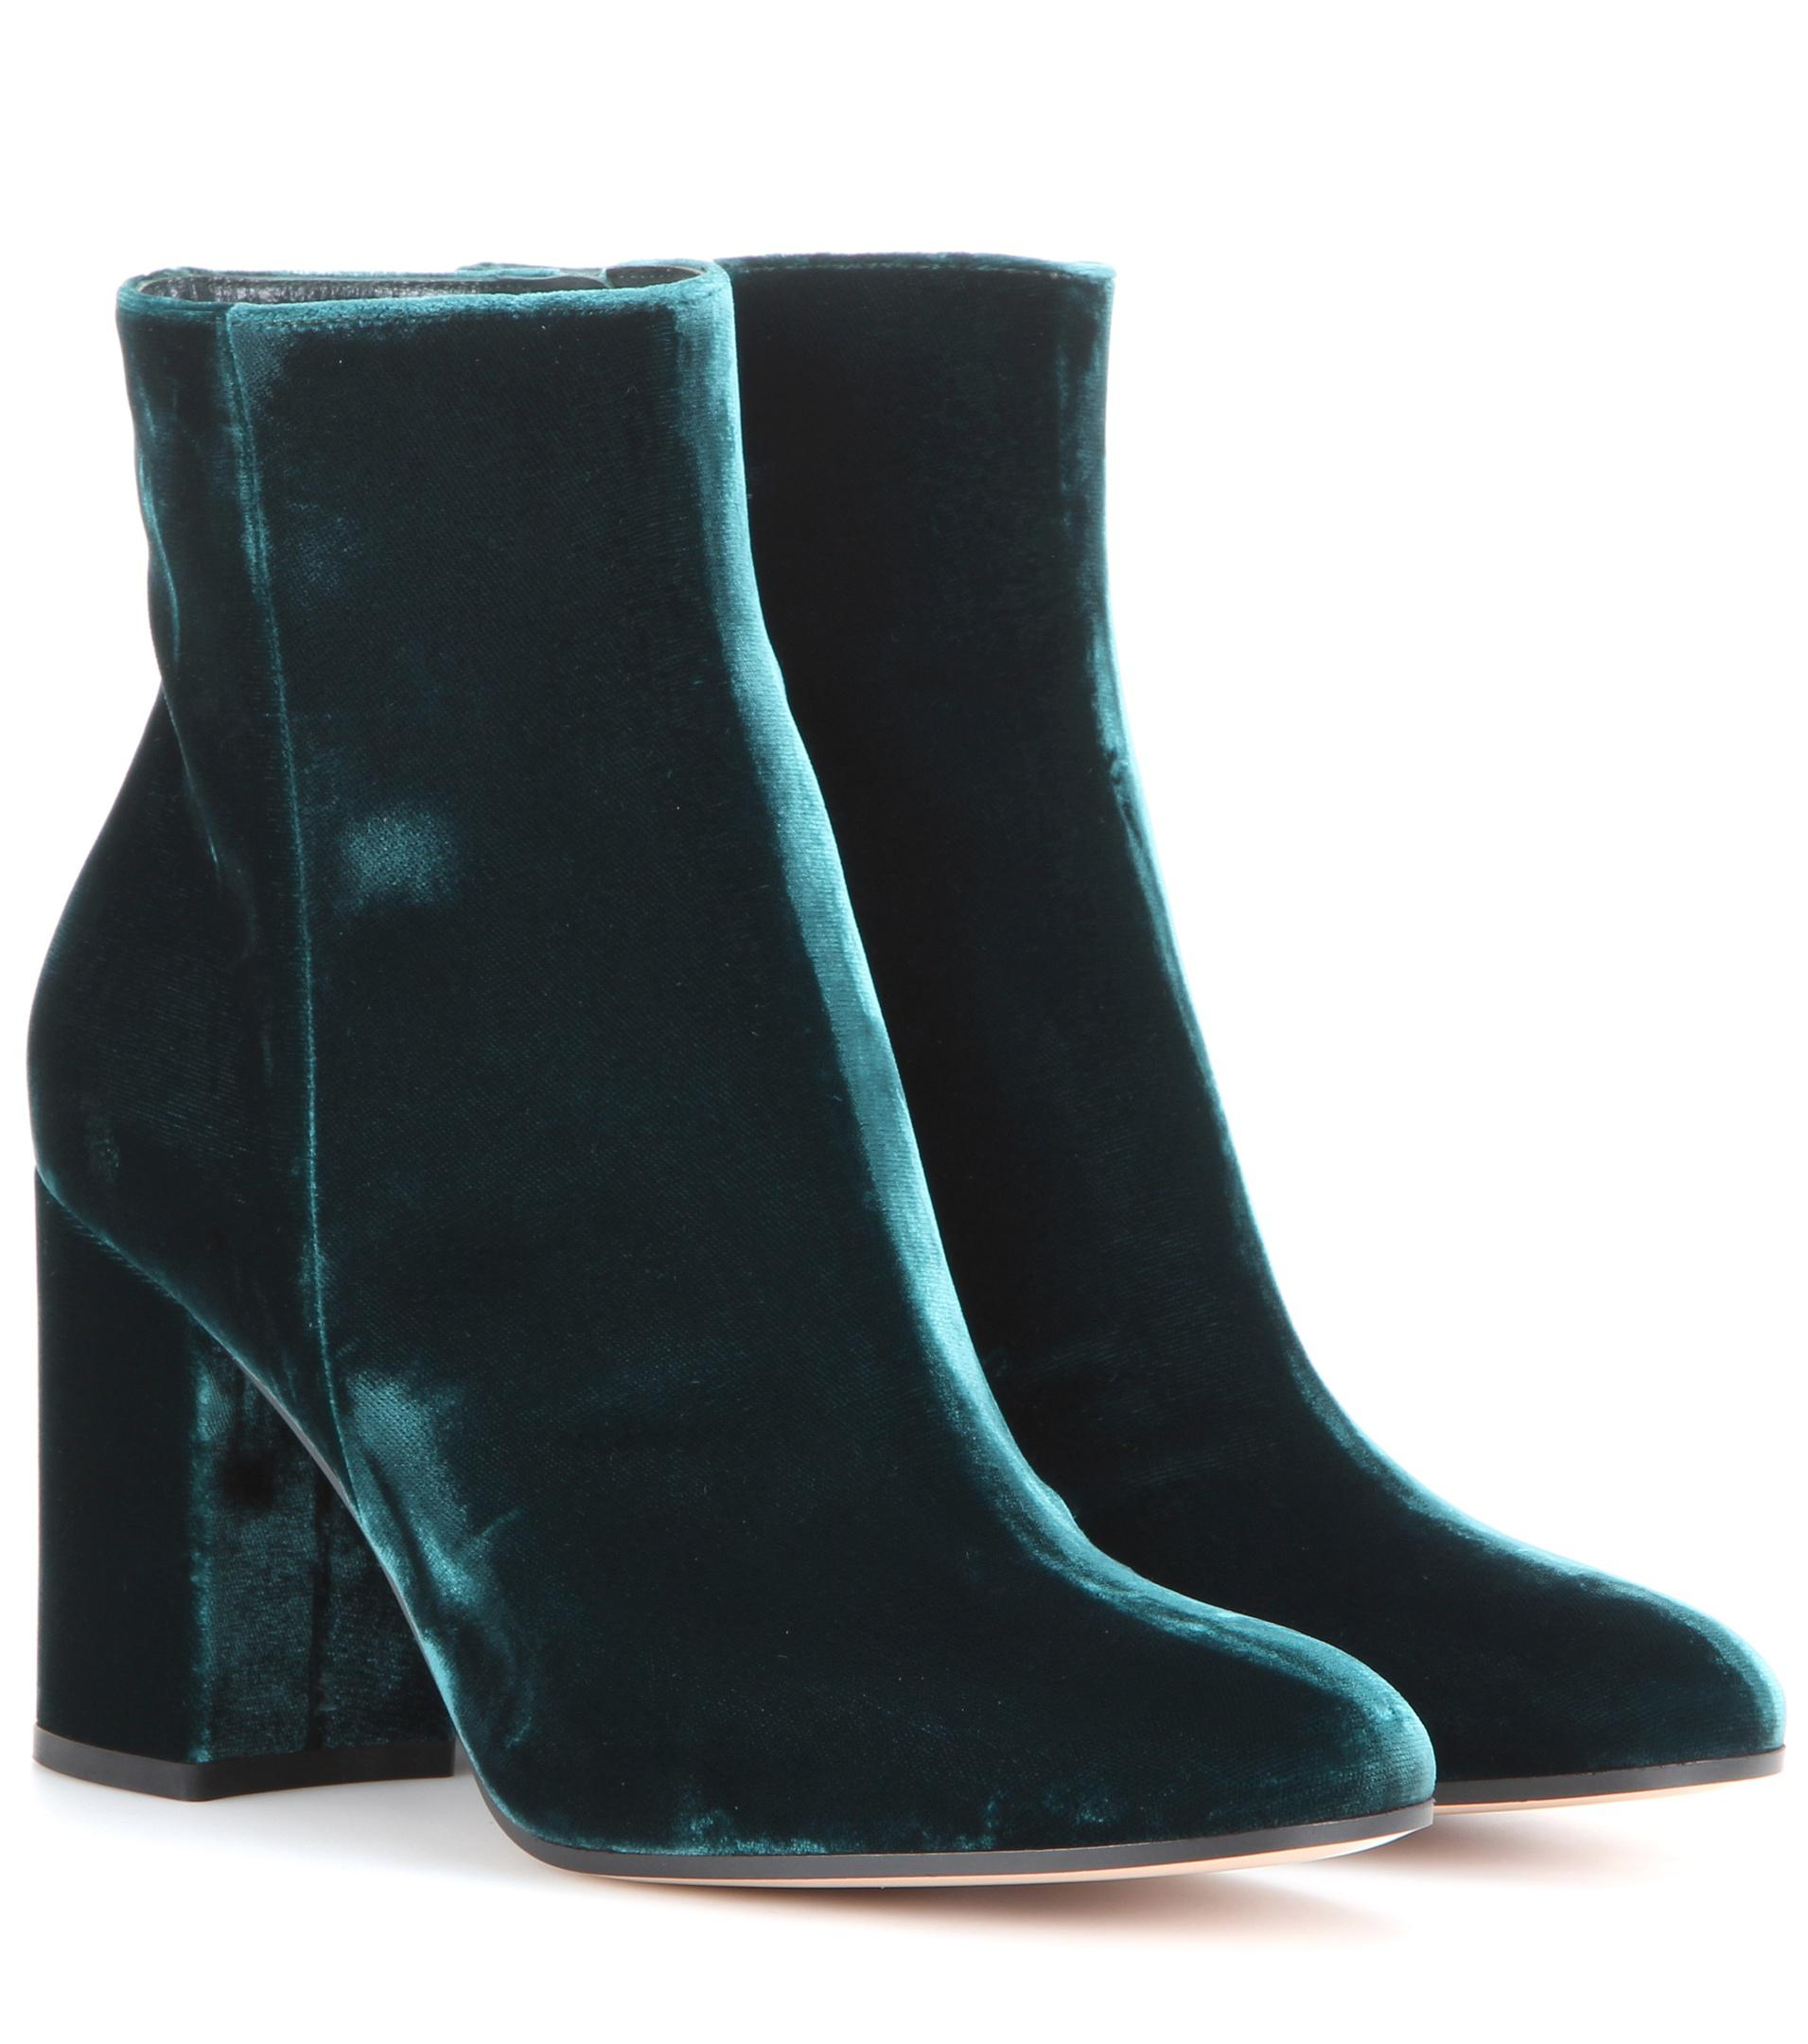 Low Cost Sneakernews For Sale Ankle Boots Rolling 85 velvet purple Gianvito Rossi Designer rwDFC